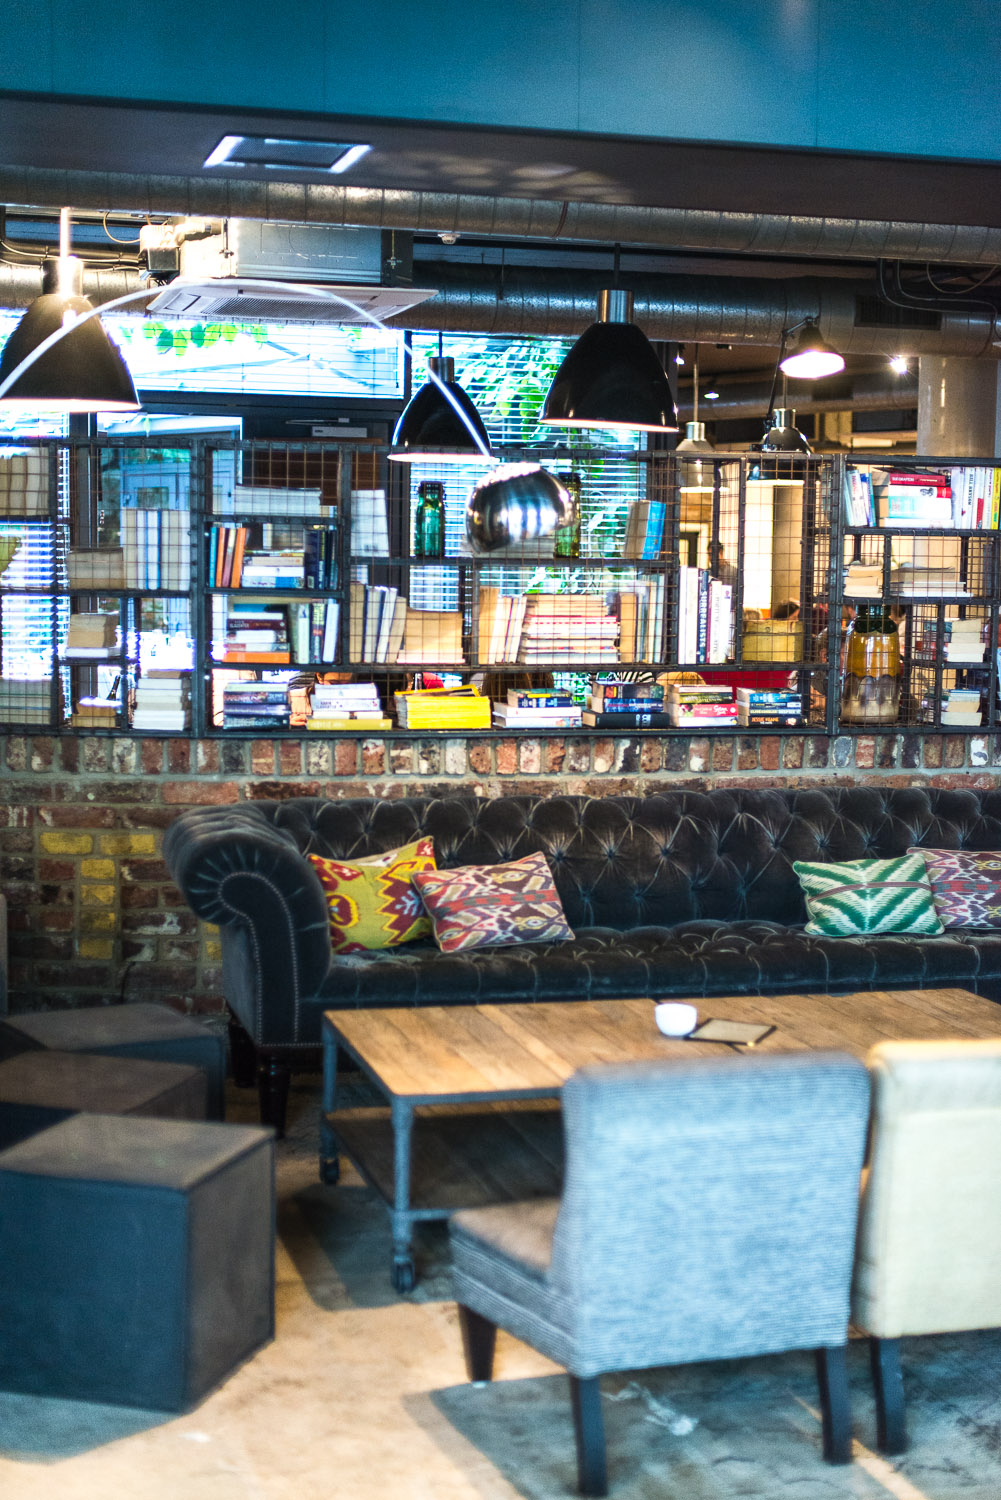 The-Hoxton-Hotel-London-16